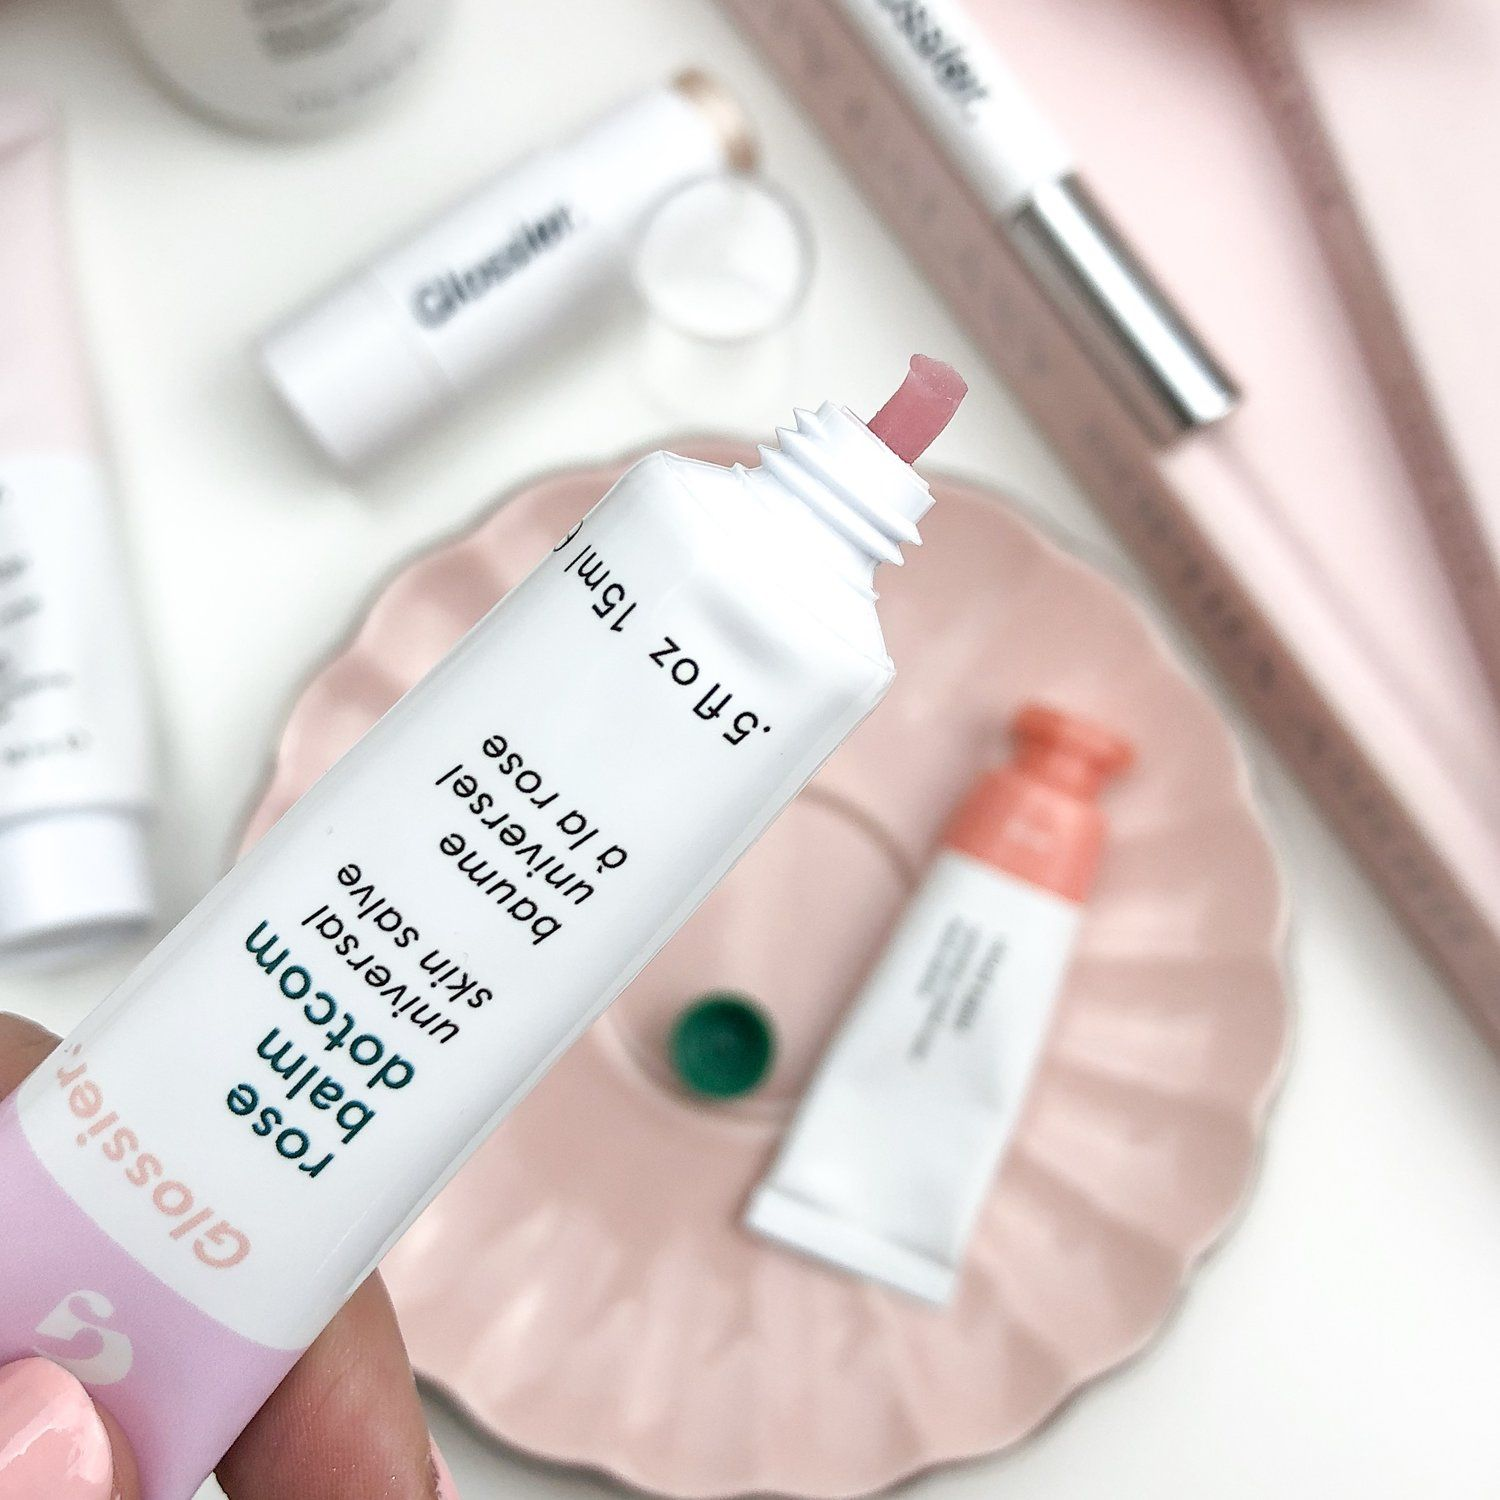 Glossier Balm Rose I got the flavour 'Rose' and